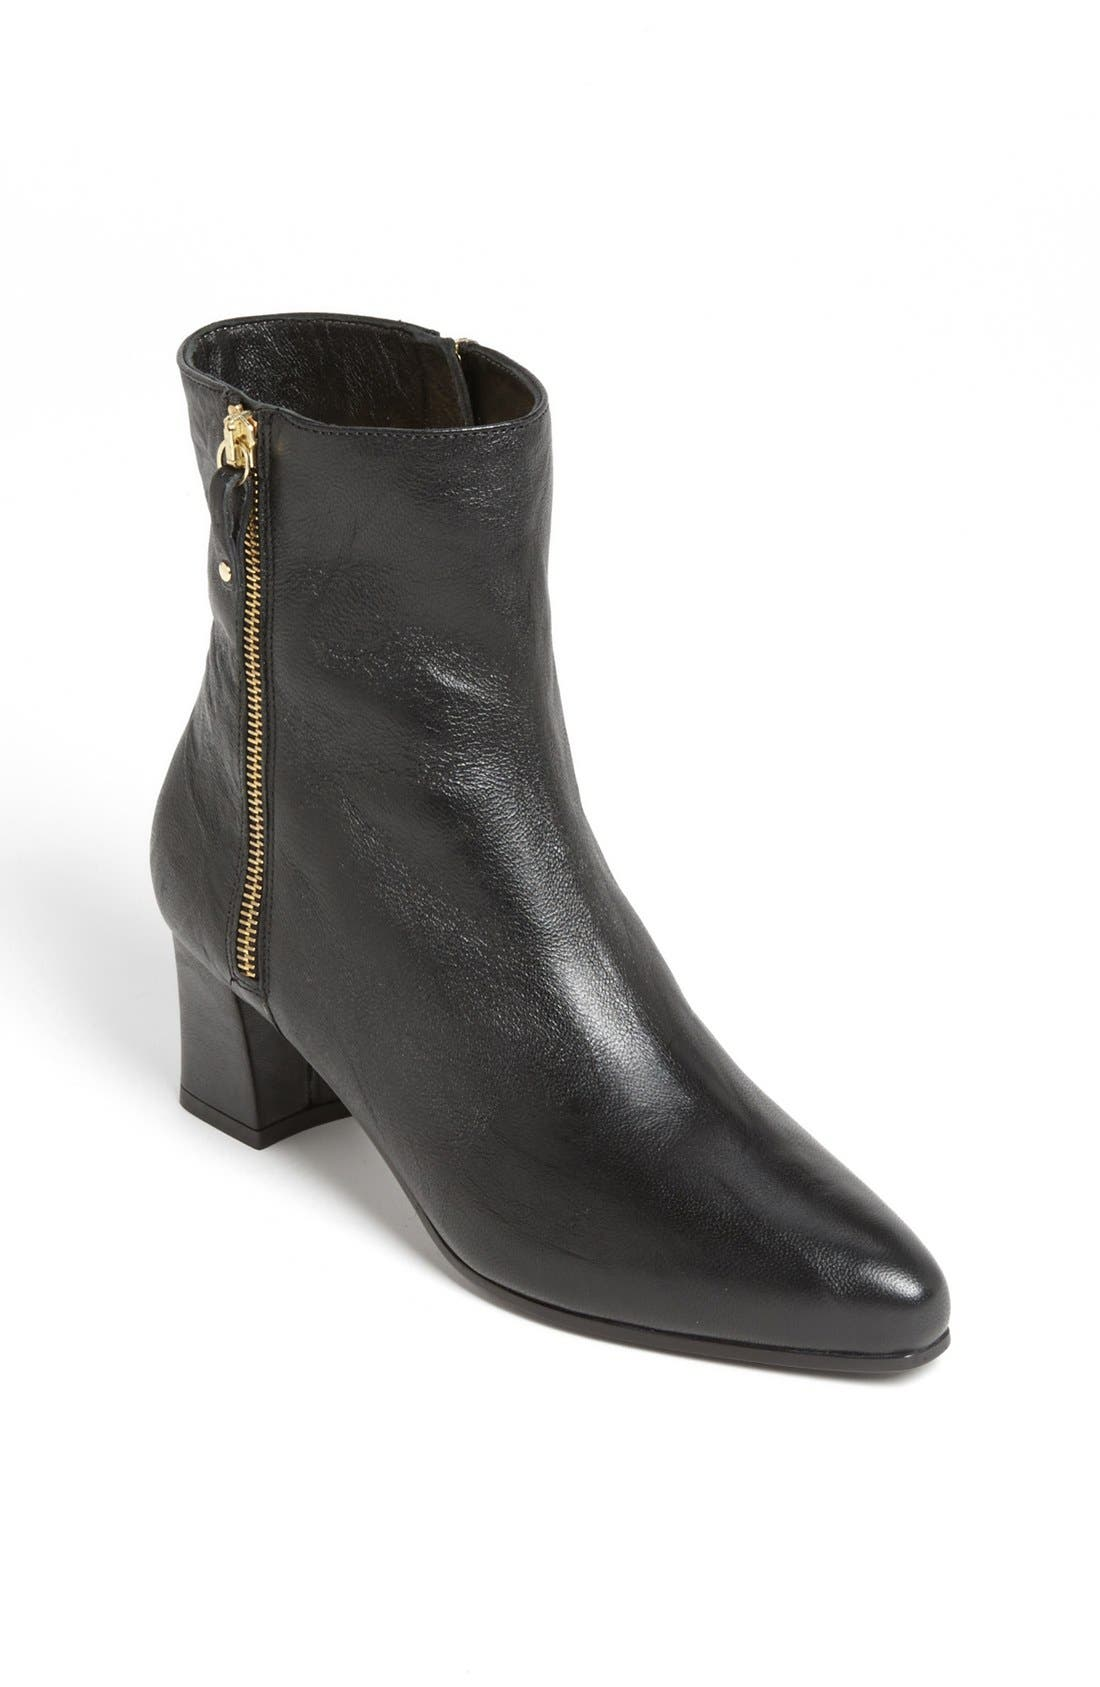 Alternate Image 1 Selected - Taccetti Double Zip Ankle Boot